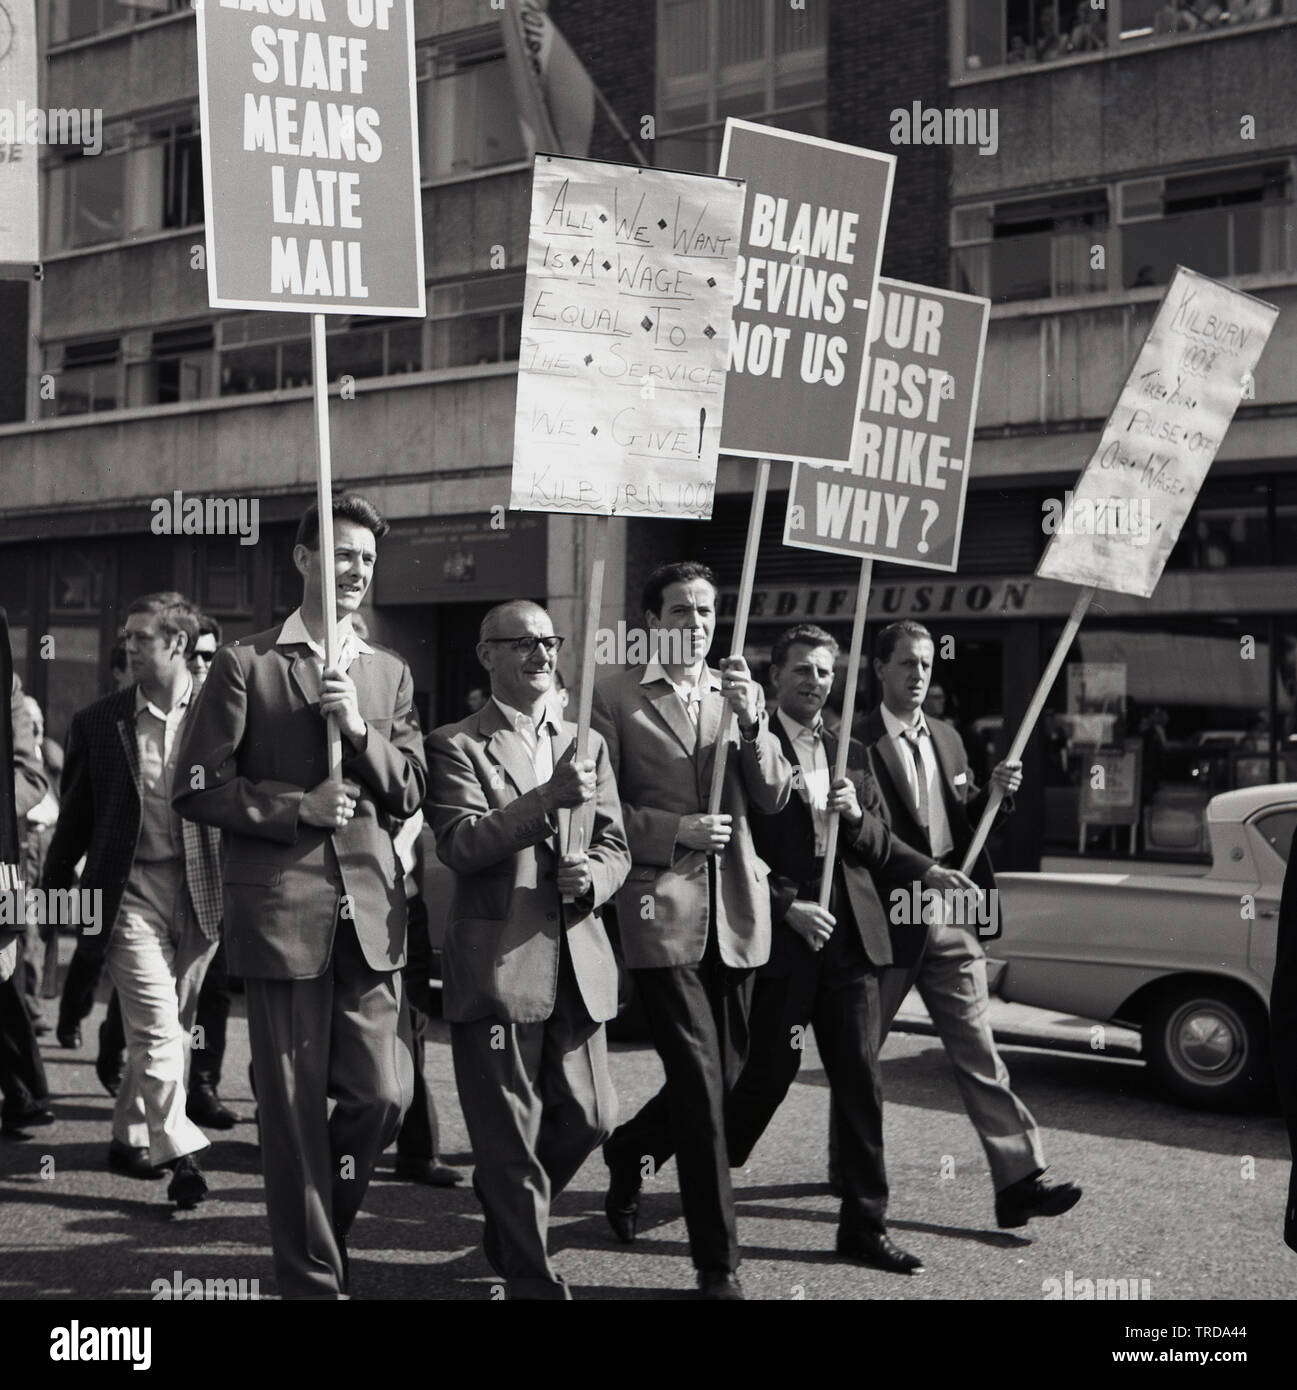 1960s, historical, striking Royal Mail postal workers walking through Central London holding banners, one saying...'Our first strike Why?  The postmenfrom the Kilburn branch were protesting about low wages and blaming the minster Bevin. - Stock Image